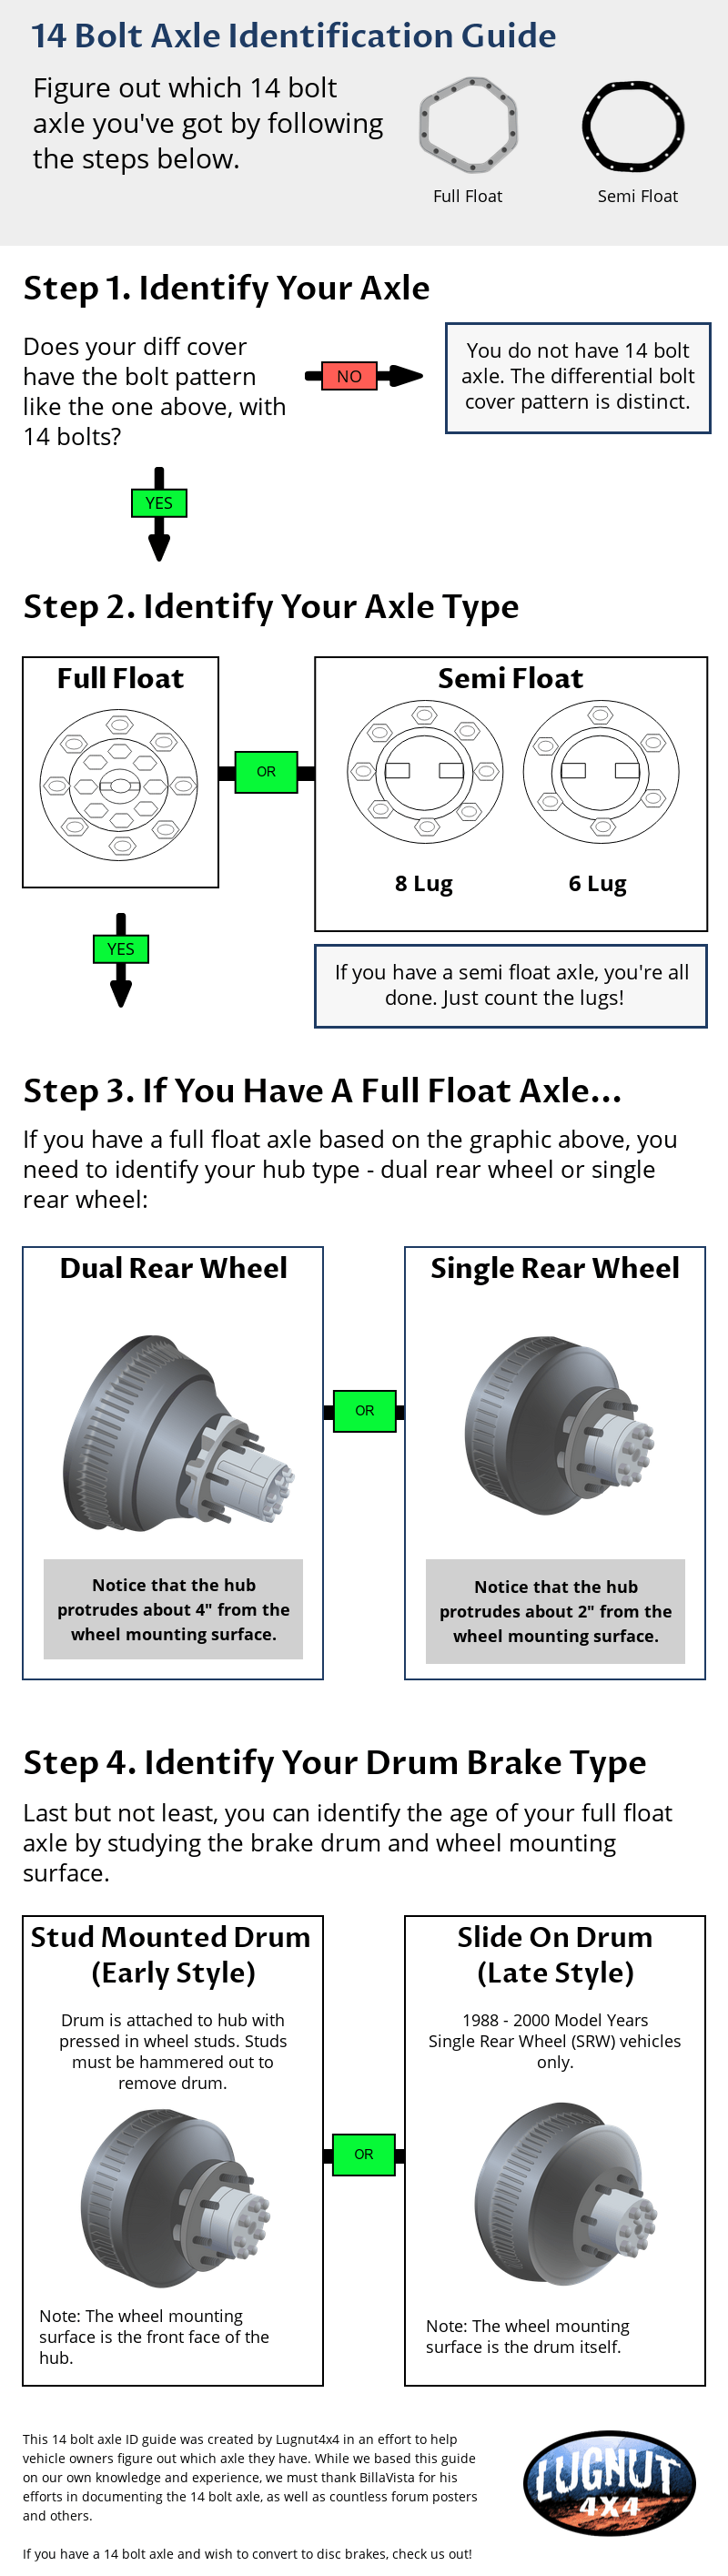 14 bolt axle identification chart